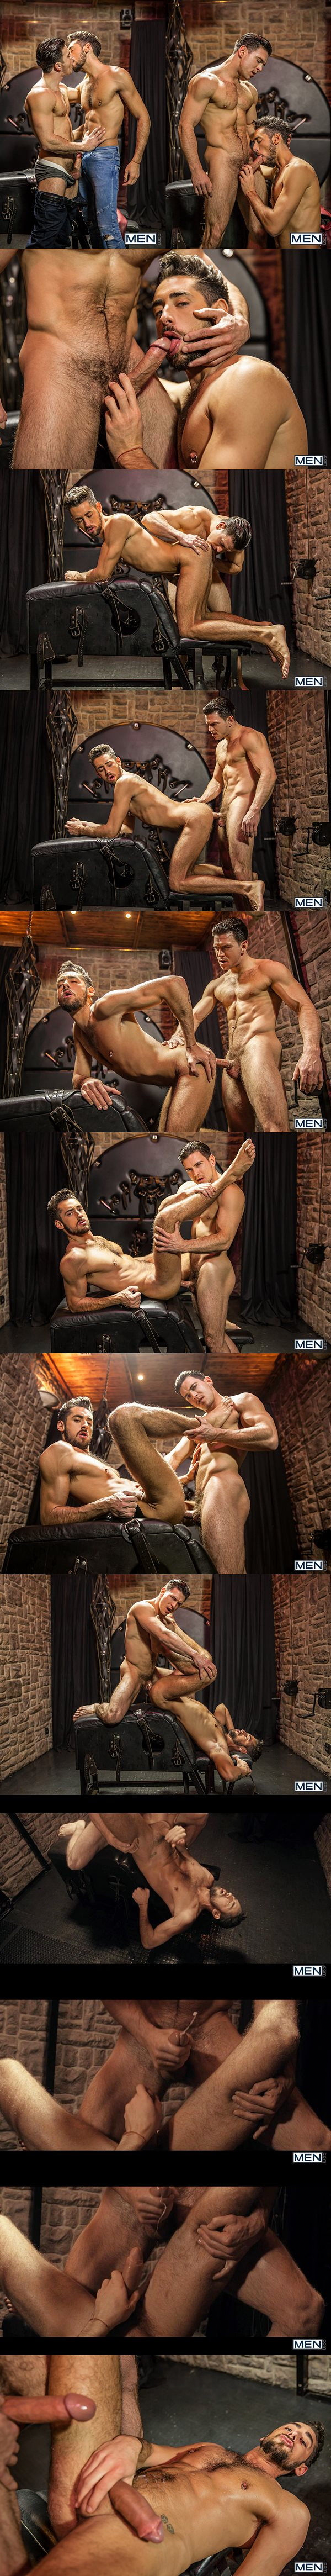 Paddy O'Brian fucks the cum out of Massimo Piano in Language Barrier Part 1 at Str8togay 02